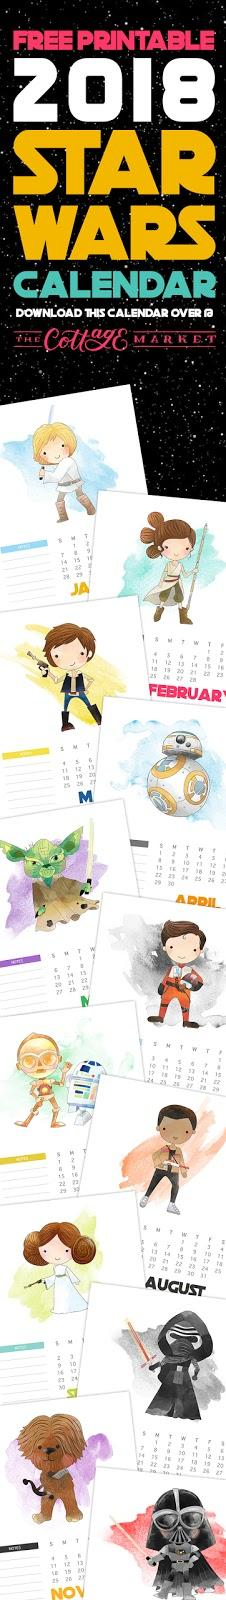 Calendario de STAR WARS ,2018  gratis